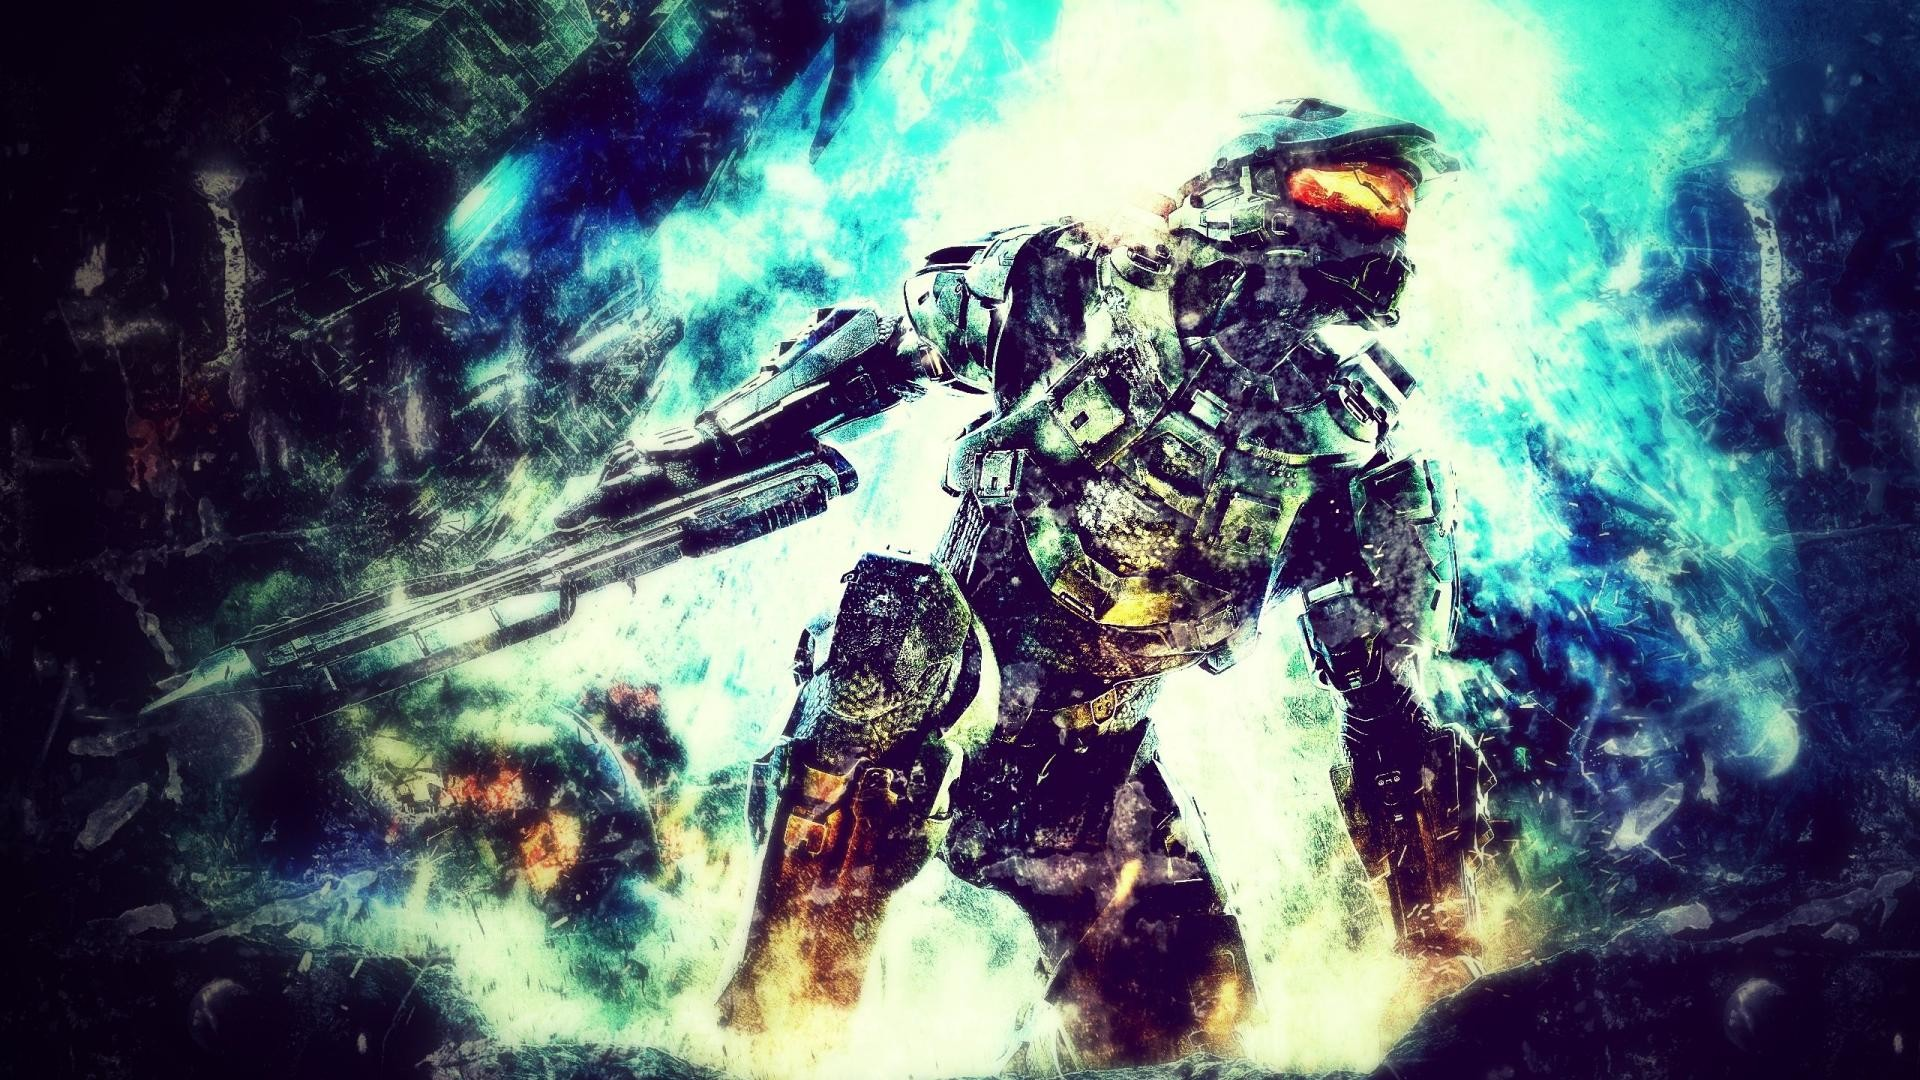 1920x1080 Master Chief HD Wallpaper